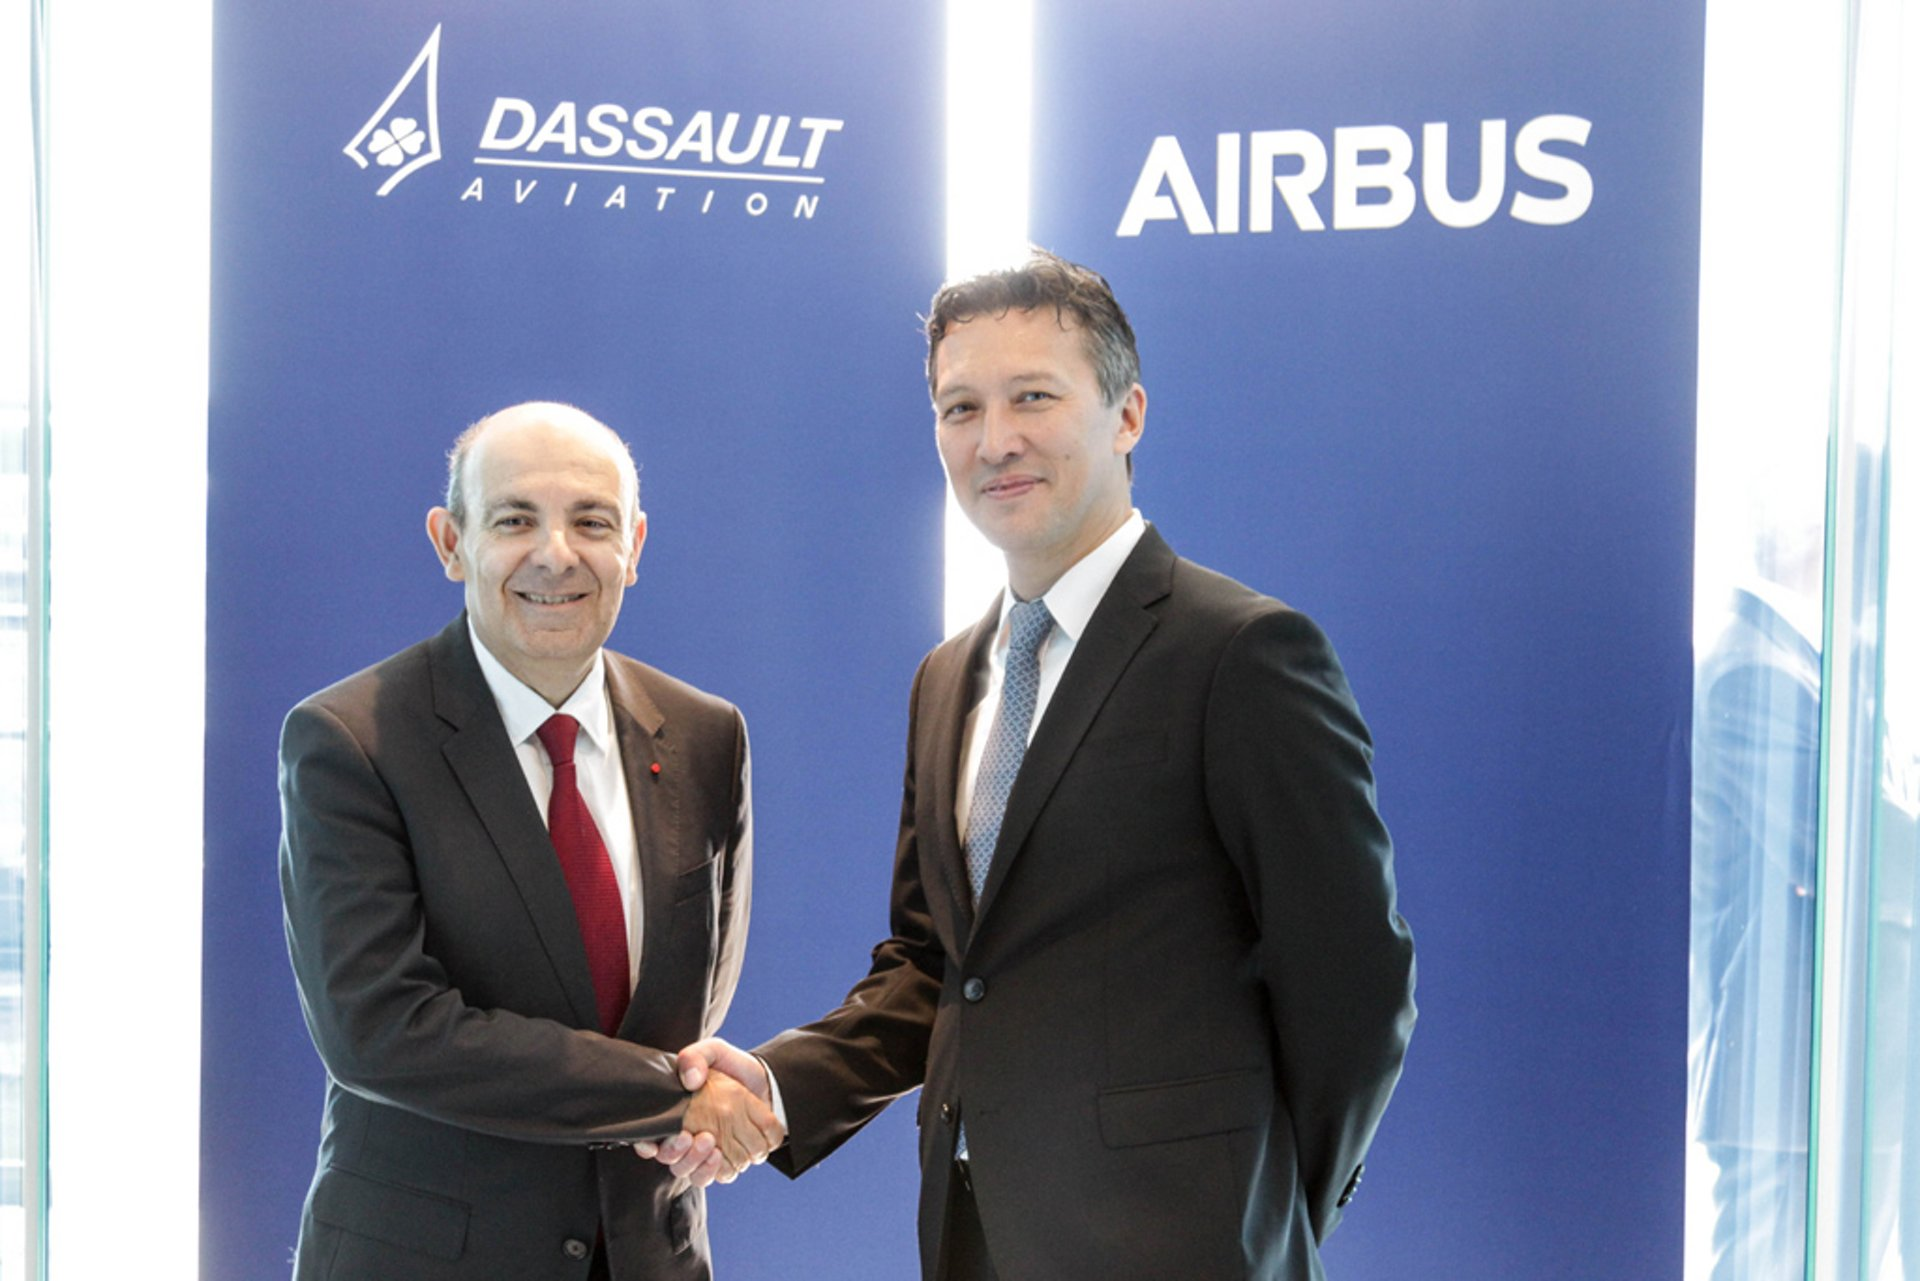 Airbus and Dassault Aviation have decided to join forces for the development and production of Europe's Future Combat Air System (FCAS); marking the collaboration with a handshake at the 2018 ILA Berlin air show are (from left to right): Éric Trappier, CEO of Dassault Aviation, and Dirk Hoke, CEO of Airbus Defence and Space